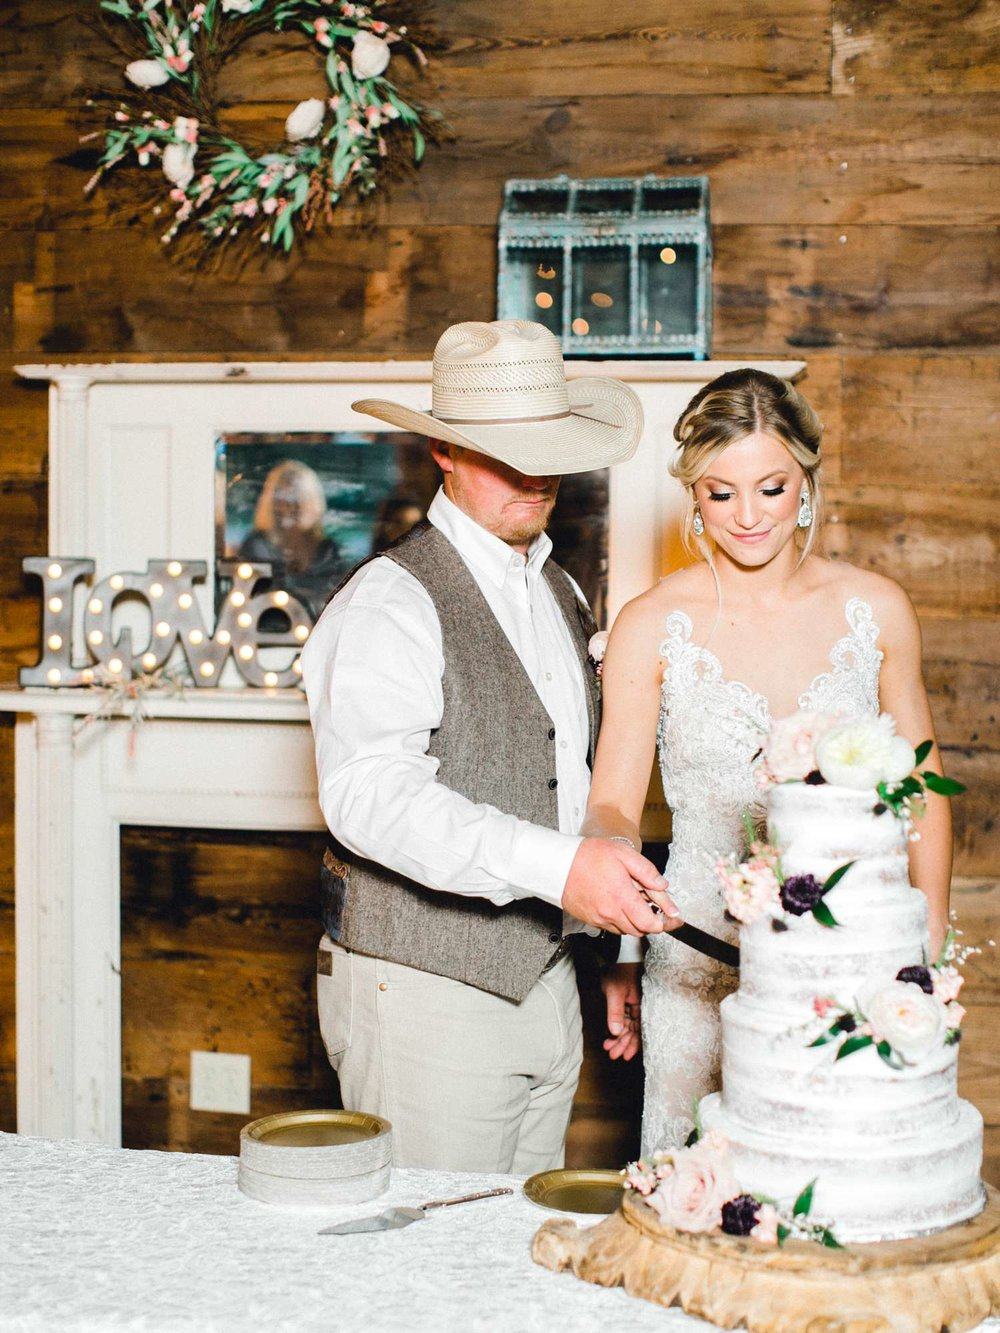 SARAH+TREVOR+BADGETT+SPARROW+CREEK+GRAHAM+TEXAS+ALLEEJ+WEDDINGS_0130.jpg